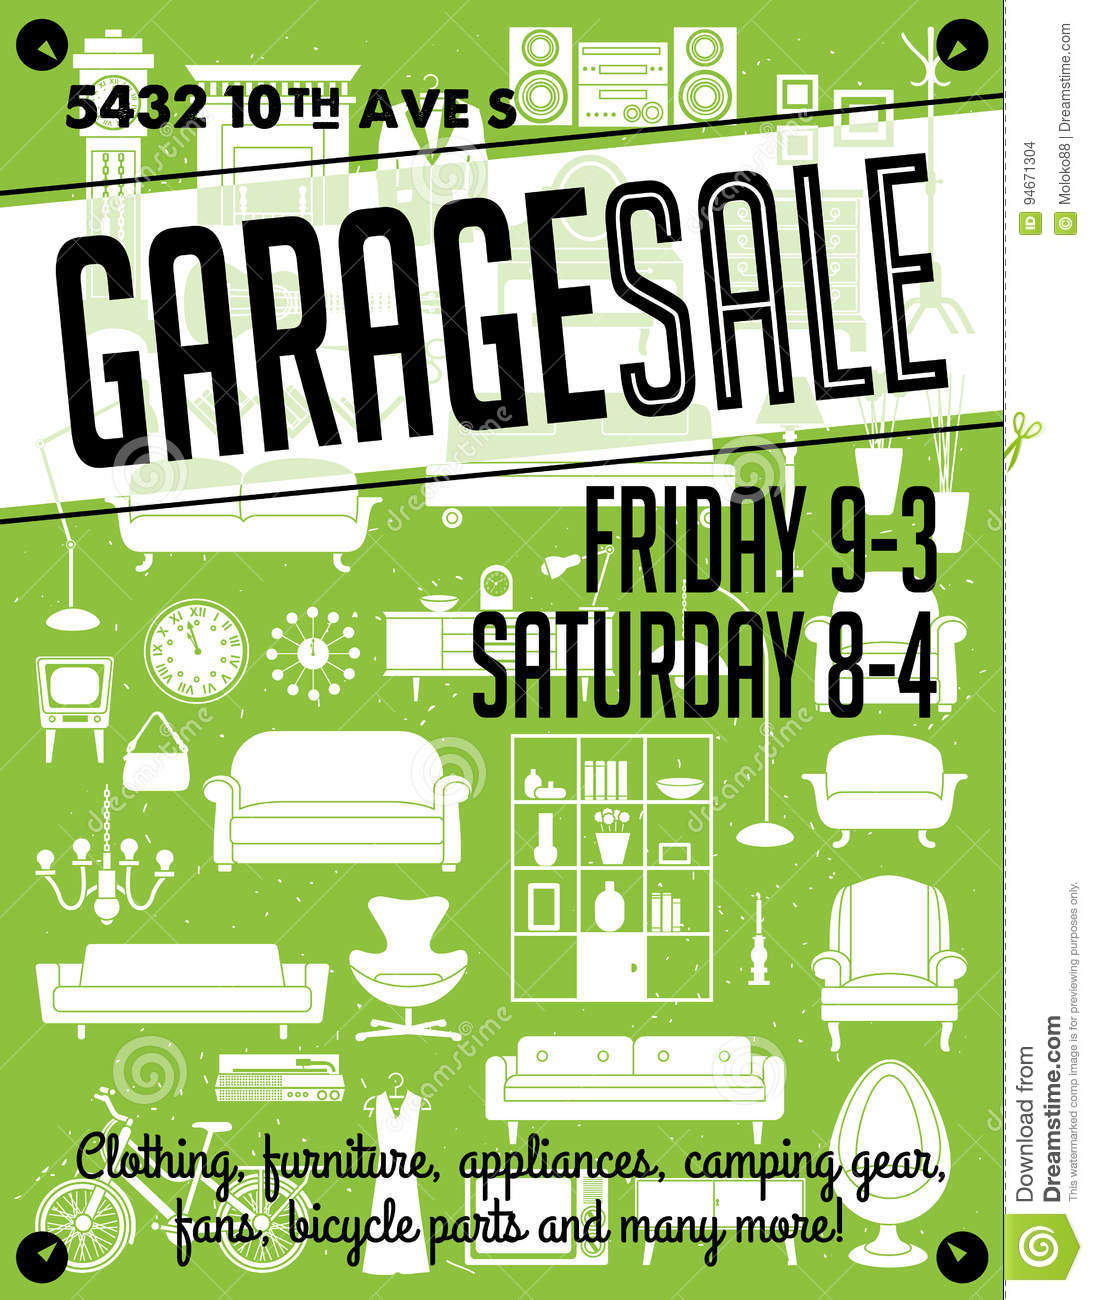 image relating to Printable Yard Signs identified as Garage Sale Poster inventory vector. Case in point of cleansing